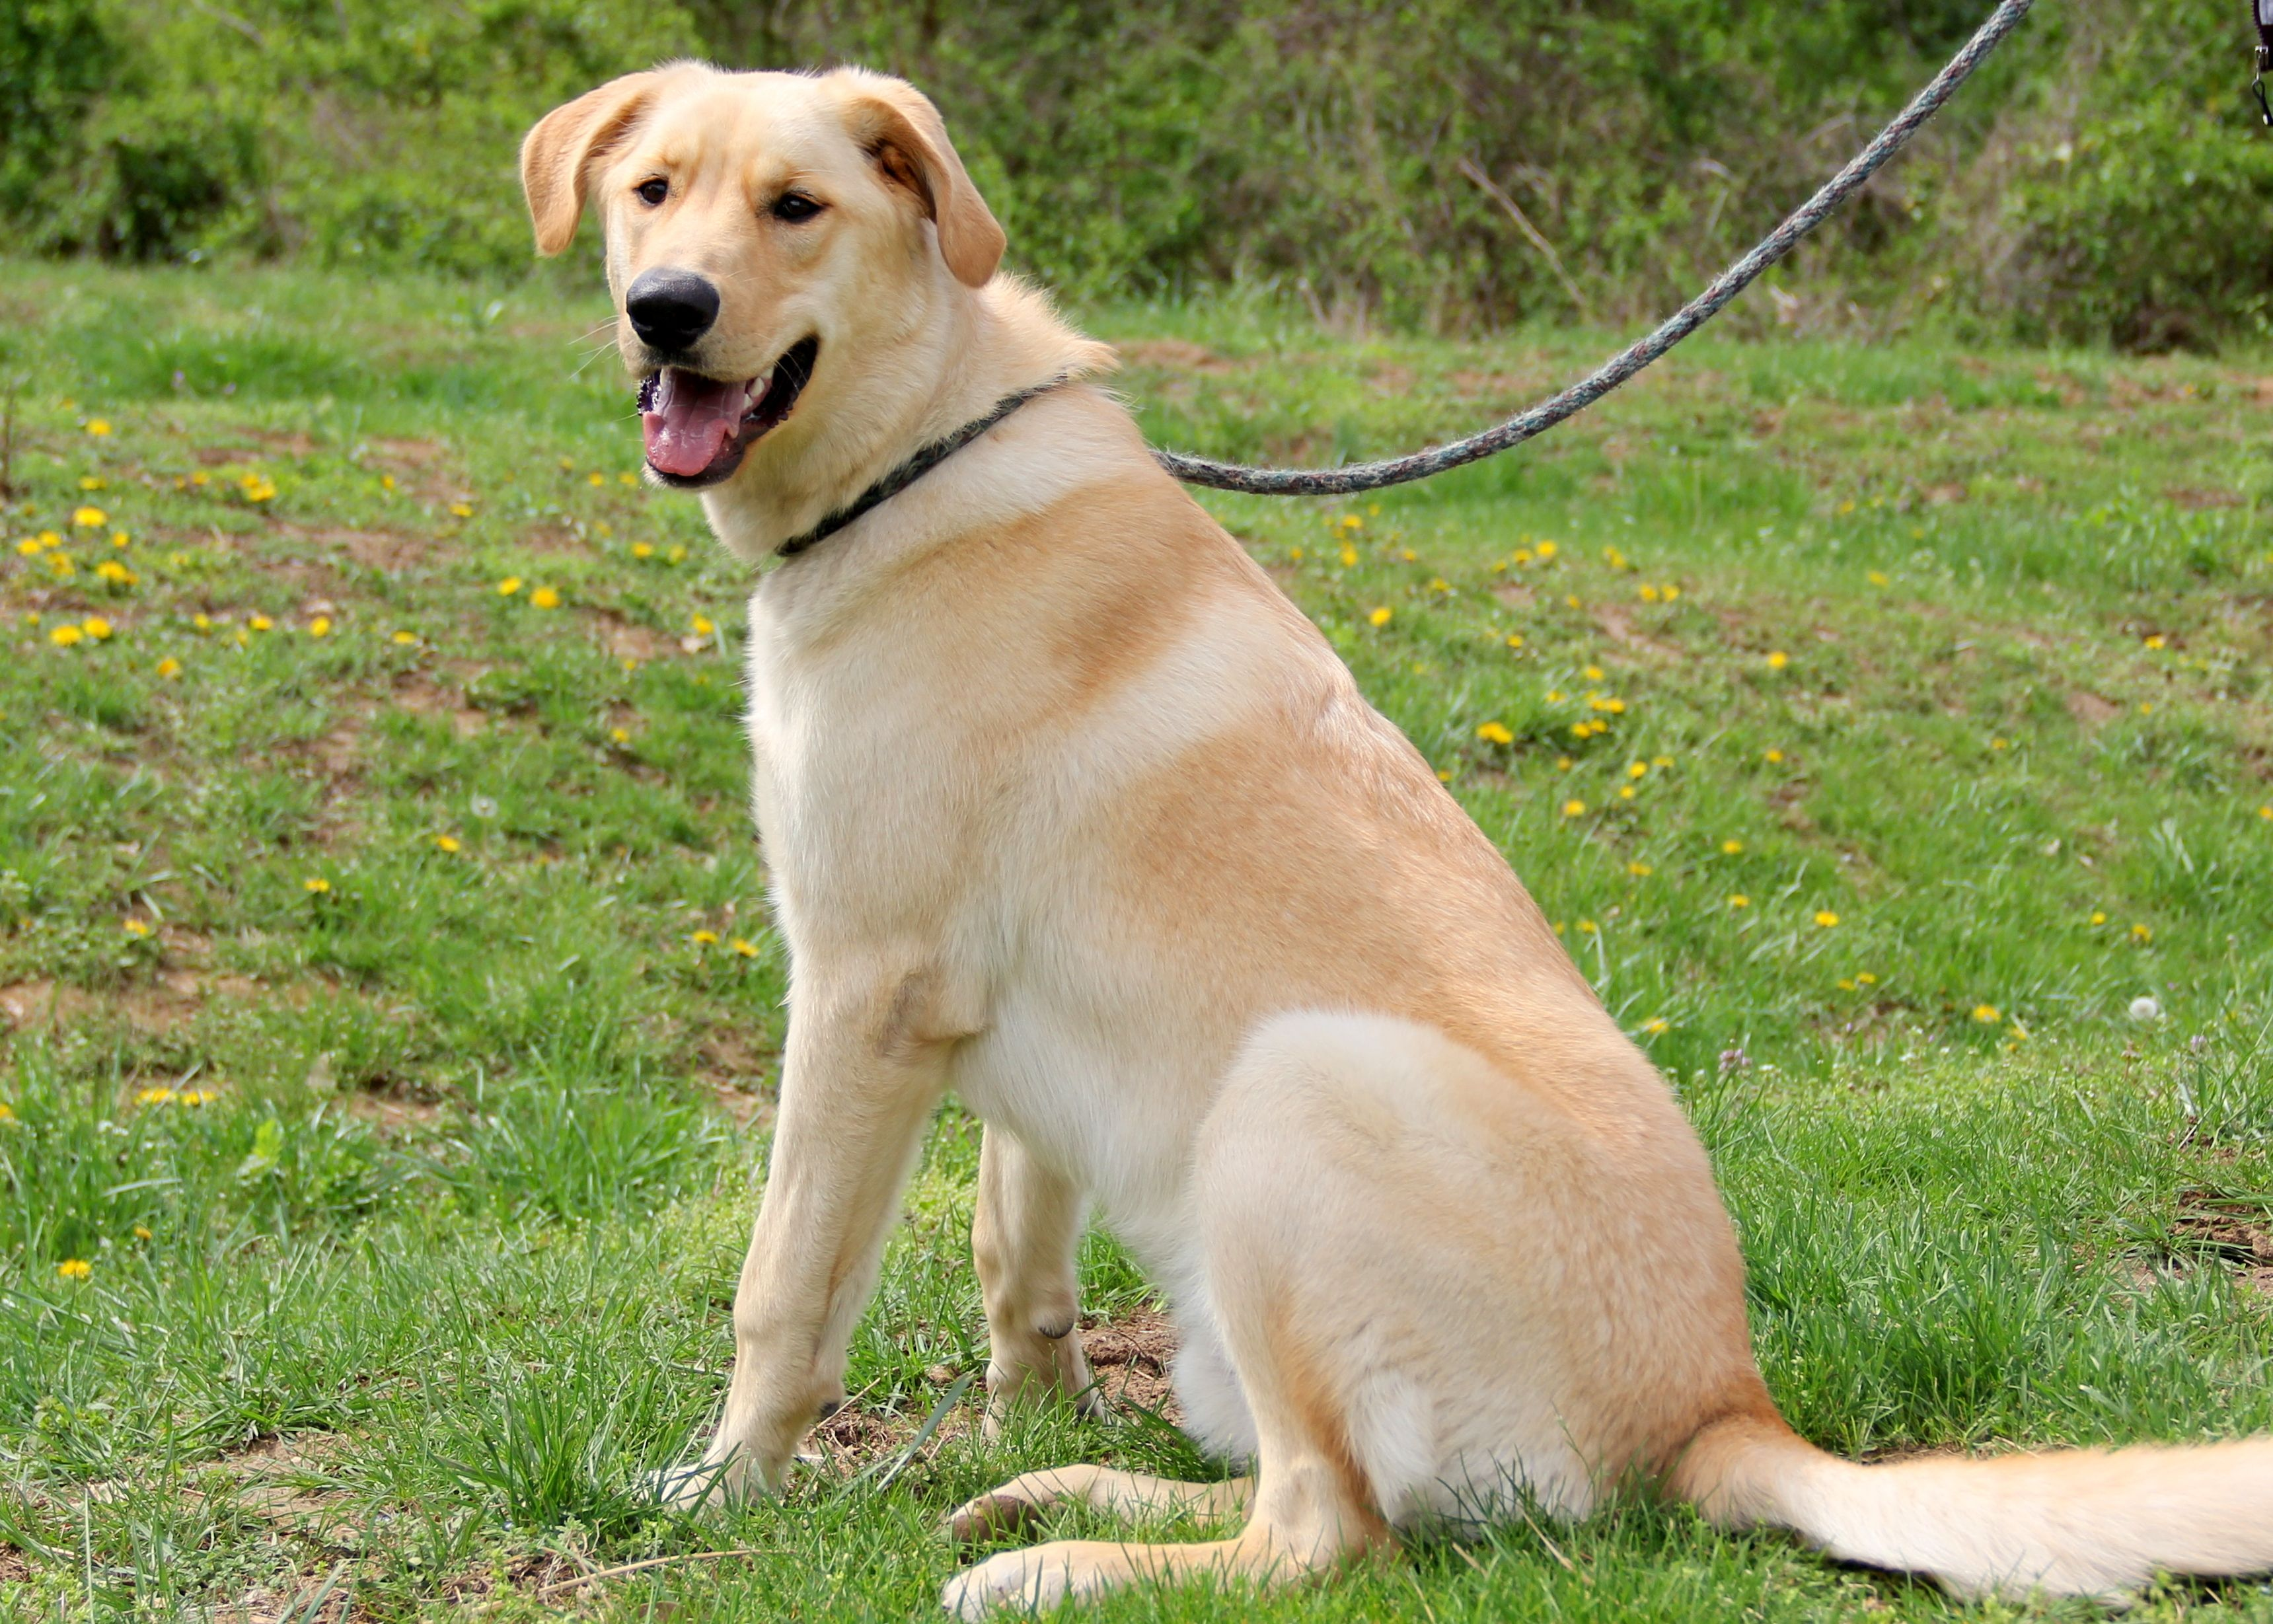 Labrador Retriever dog for Adoption in Mount Carmel, IL